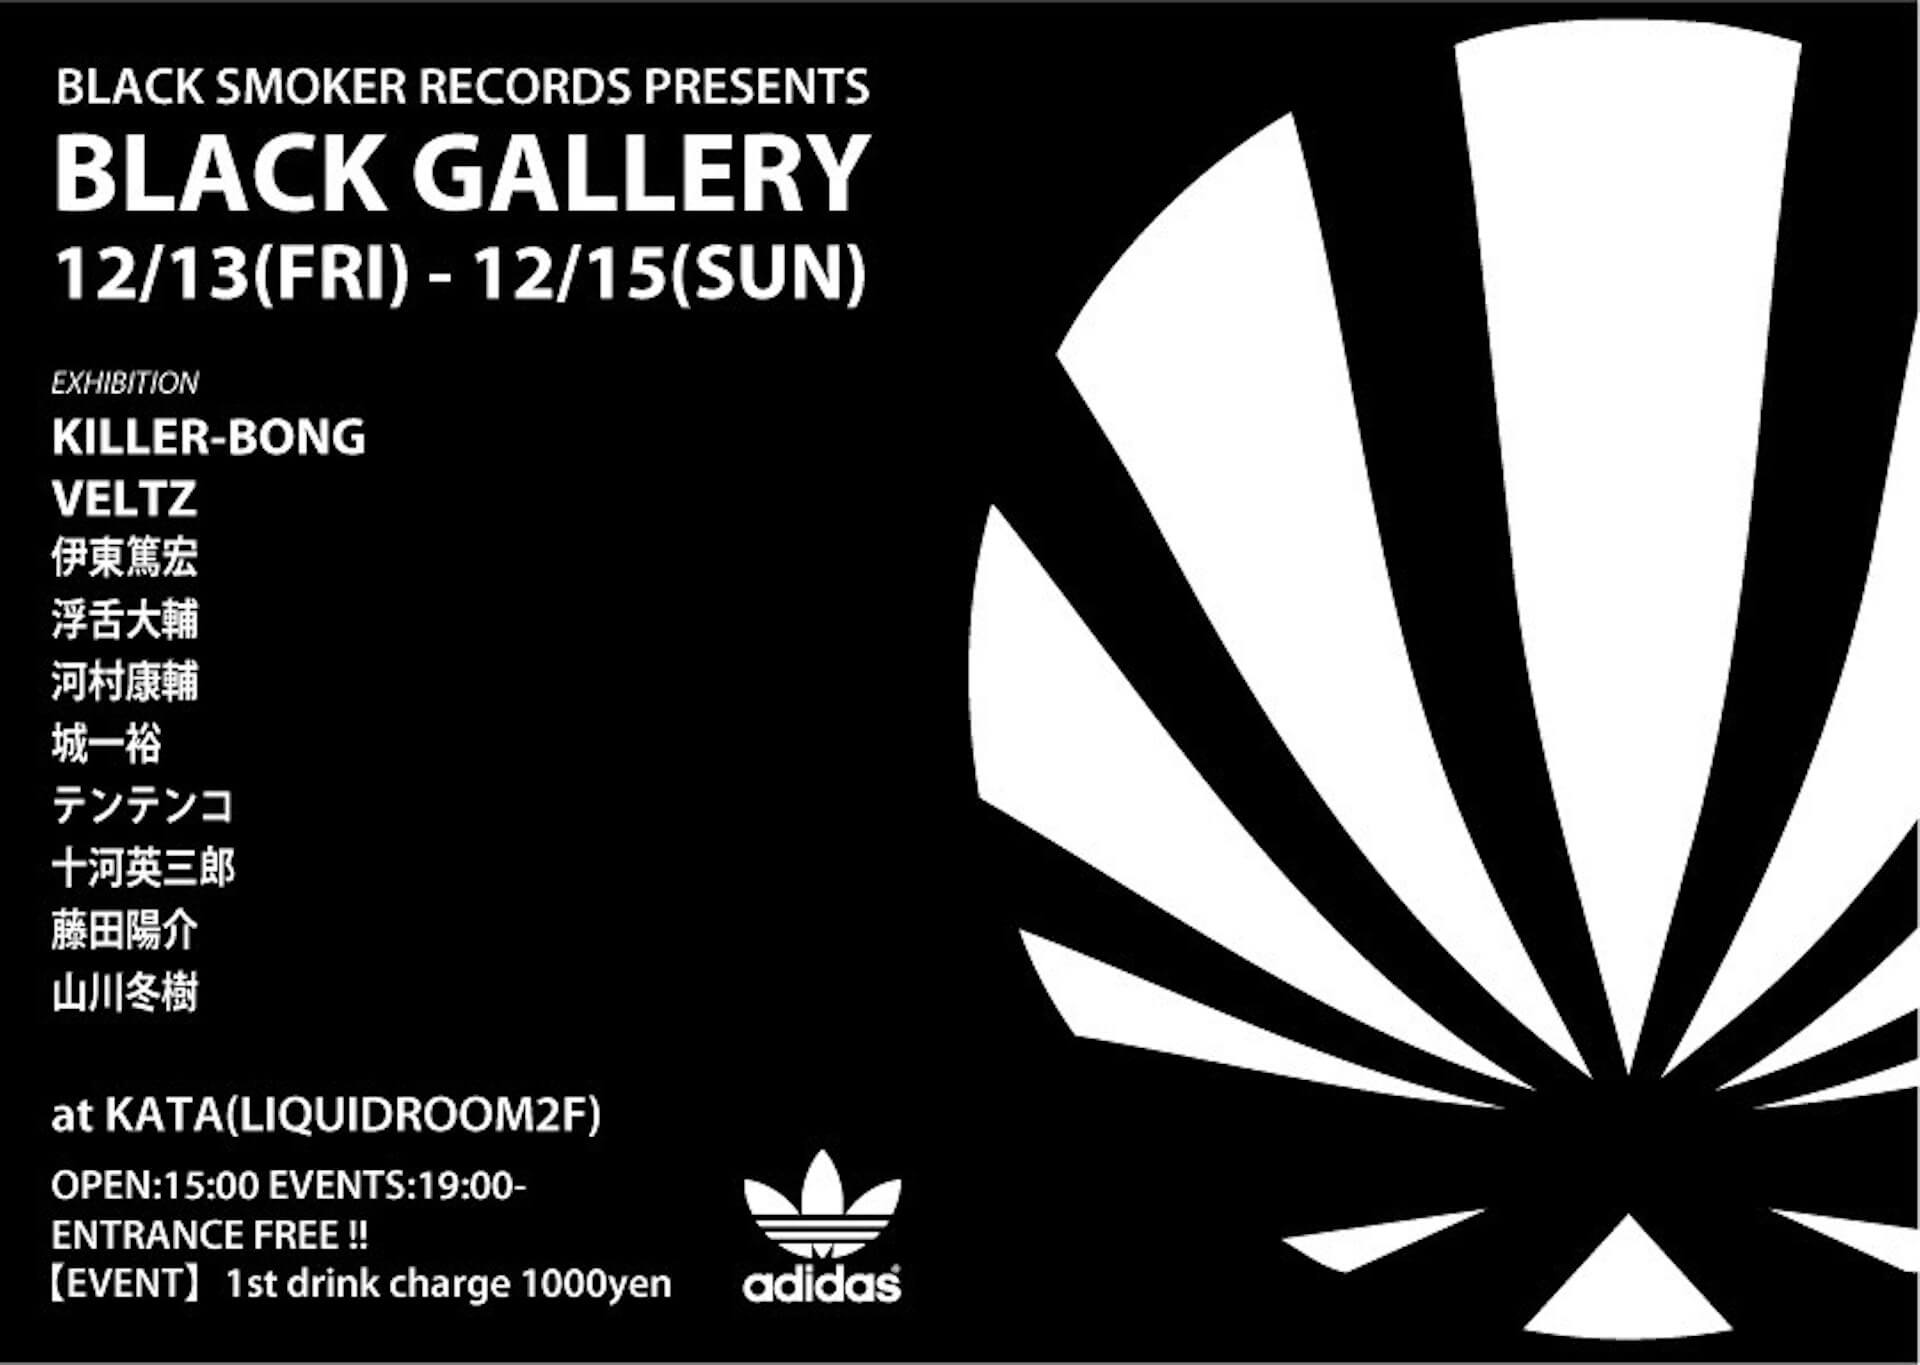 BLACK SMOKERSによる毎年恒例の感謝祭「BLACK GALLERY」が今年も開催 art-culture191204-blackgallery